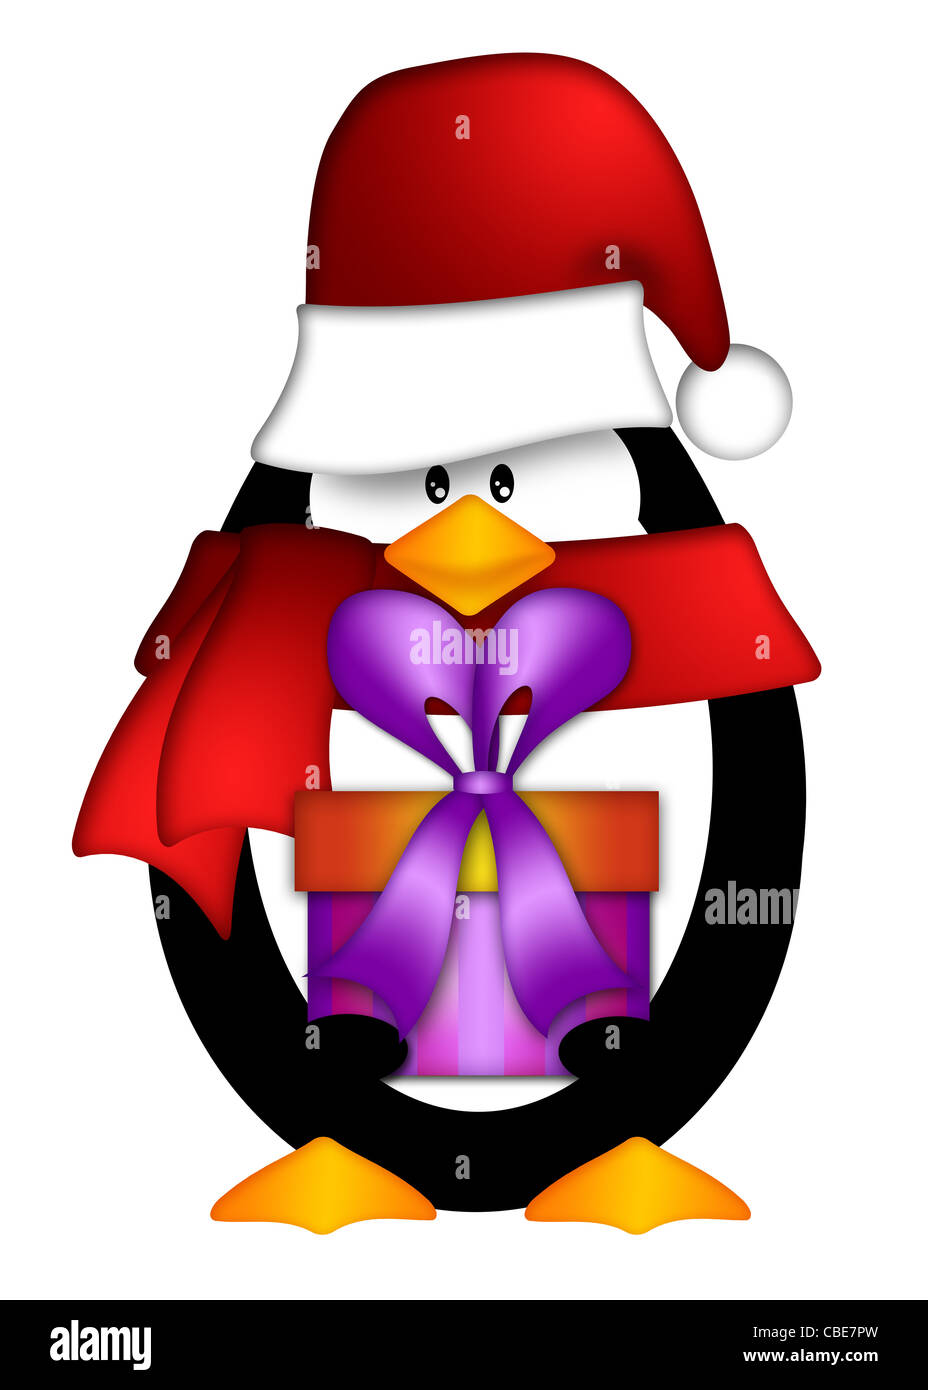 e7eb52efff2 Cute Cartoon Penguin with Santa Hat and Red Scarf Holding Wrapped Present  Illustration Isolated on White